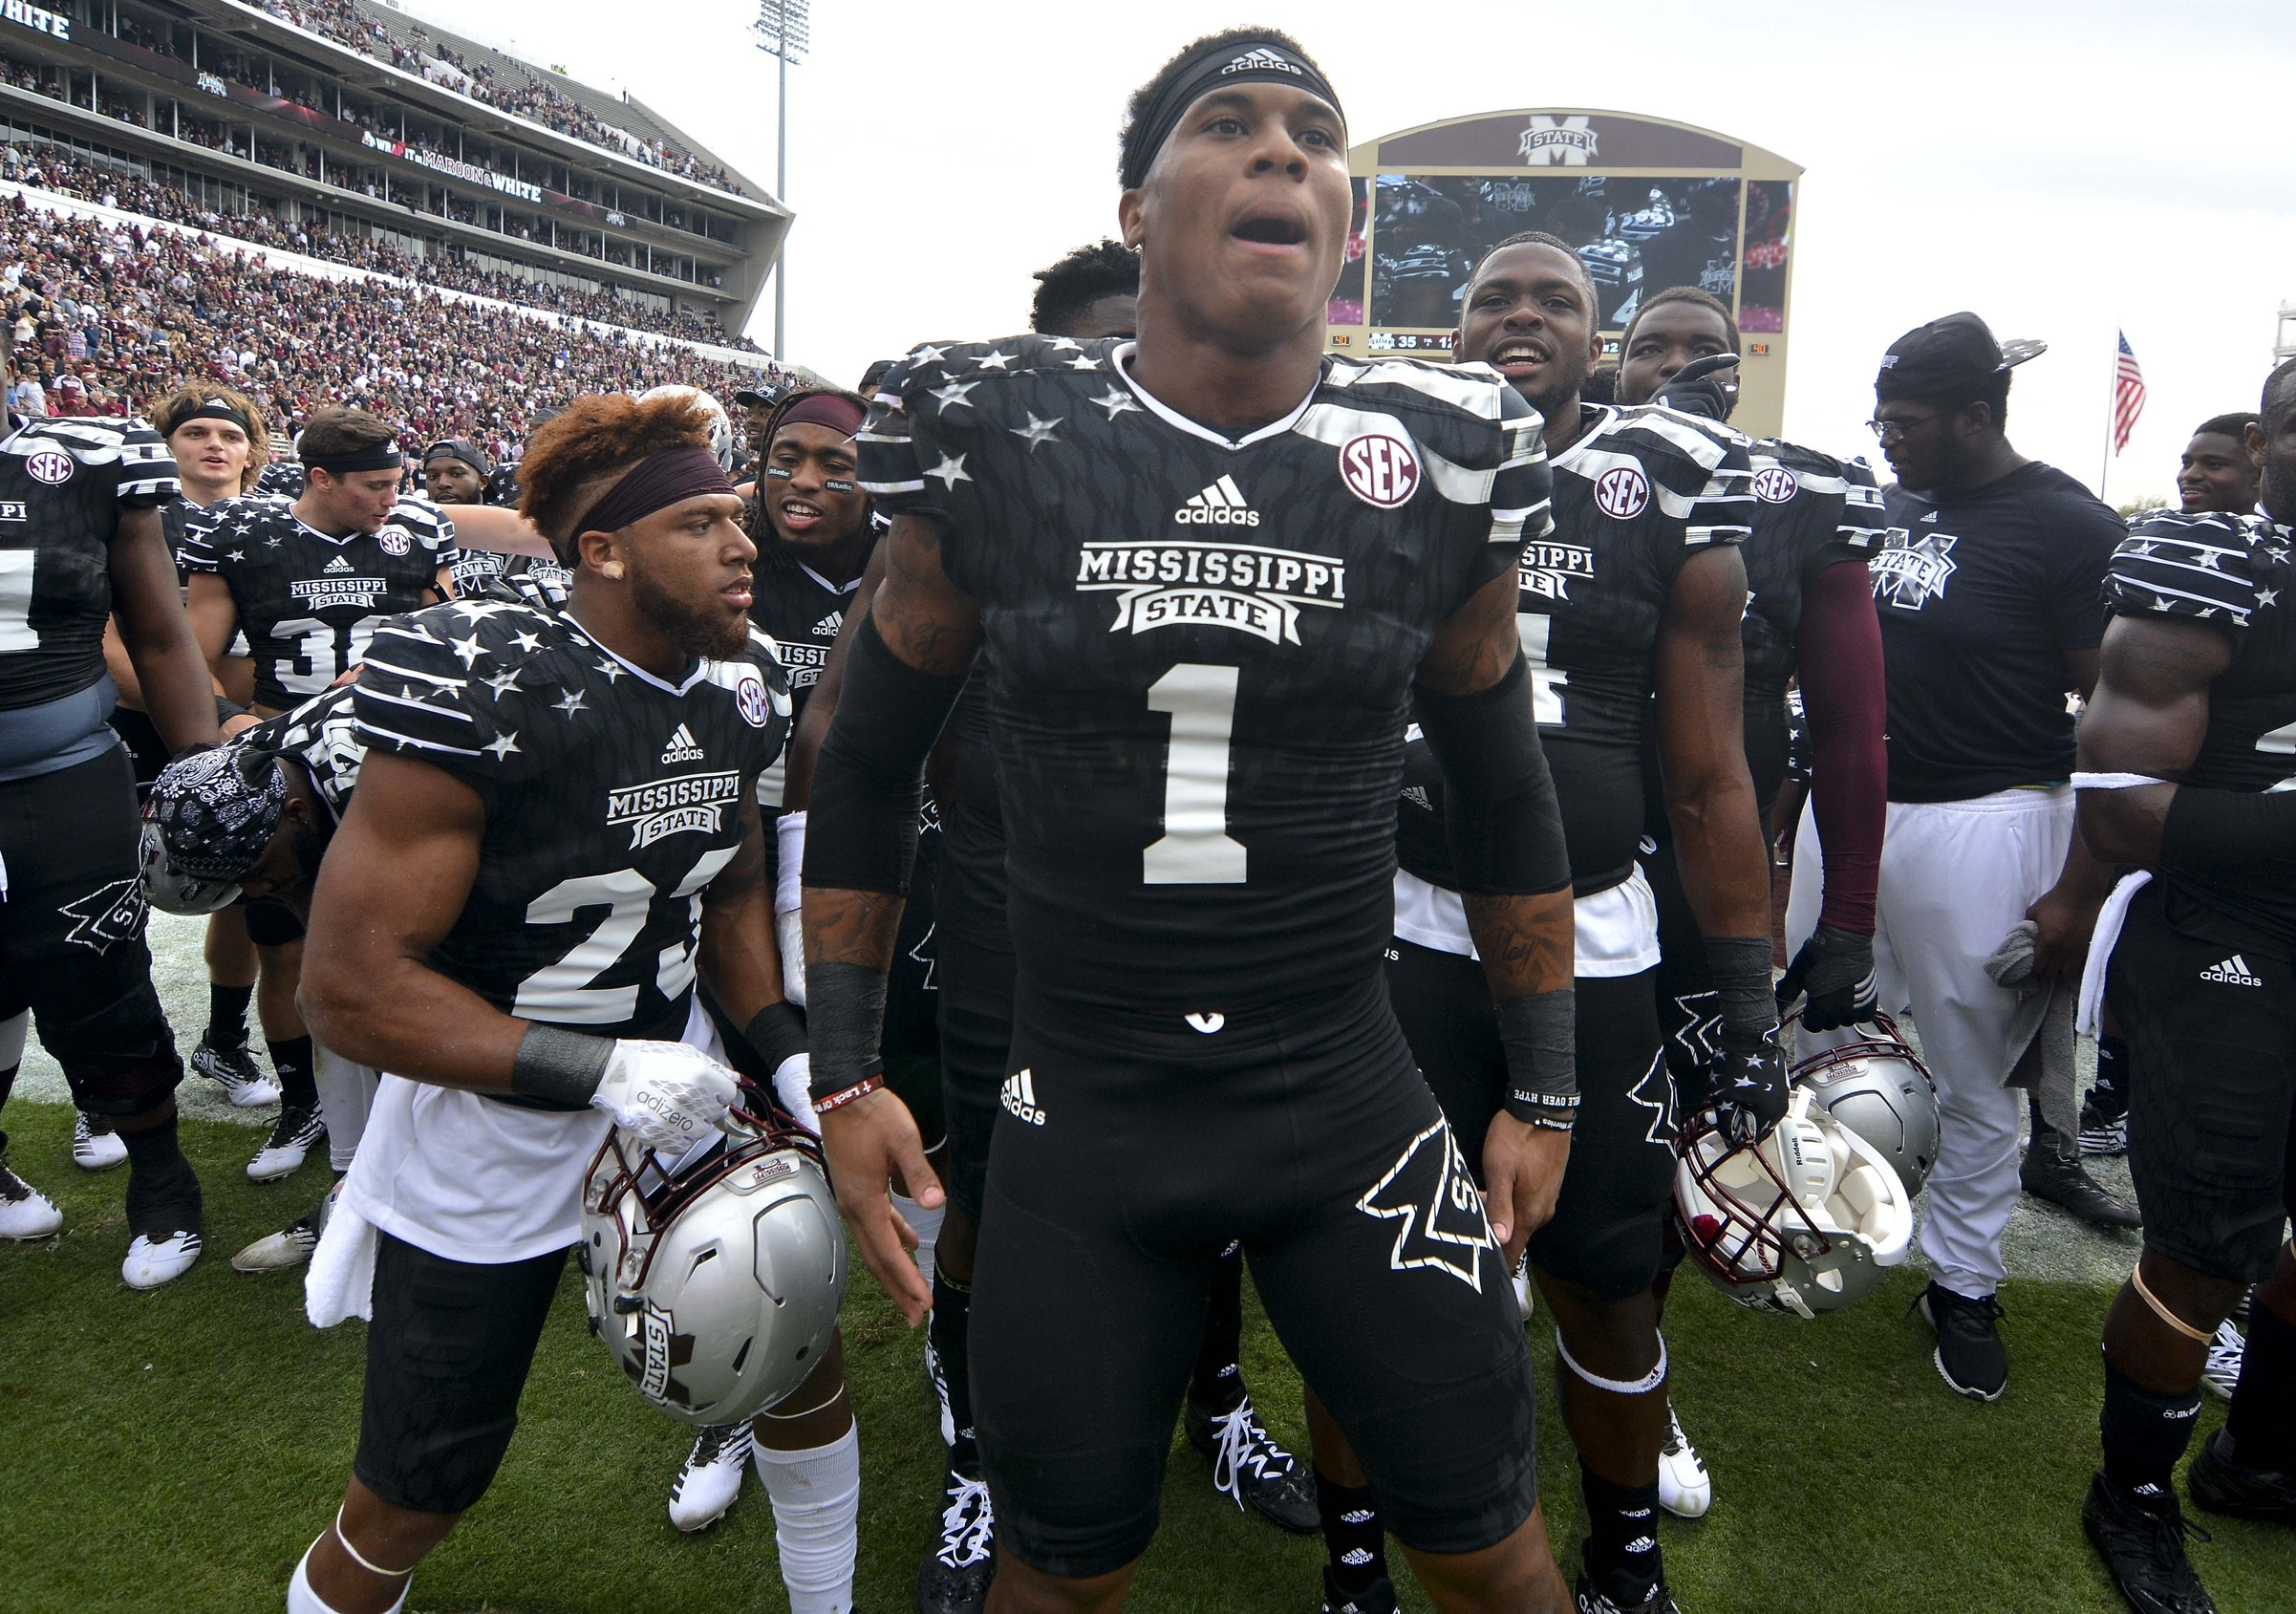 College Football Week 11, Mississippi State